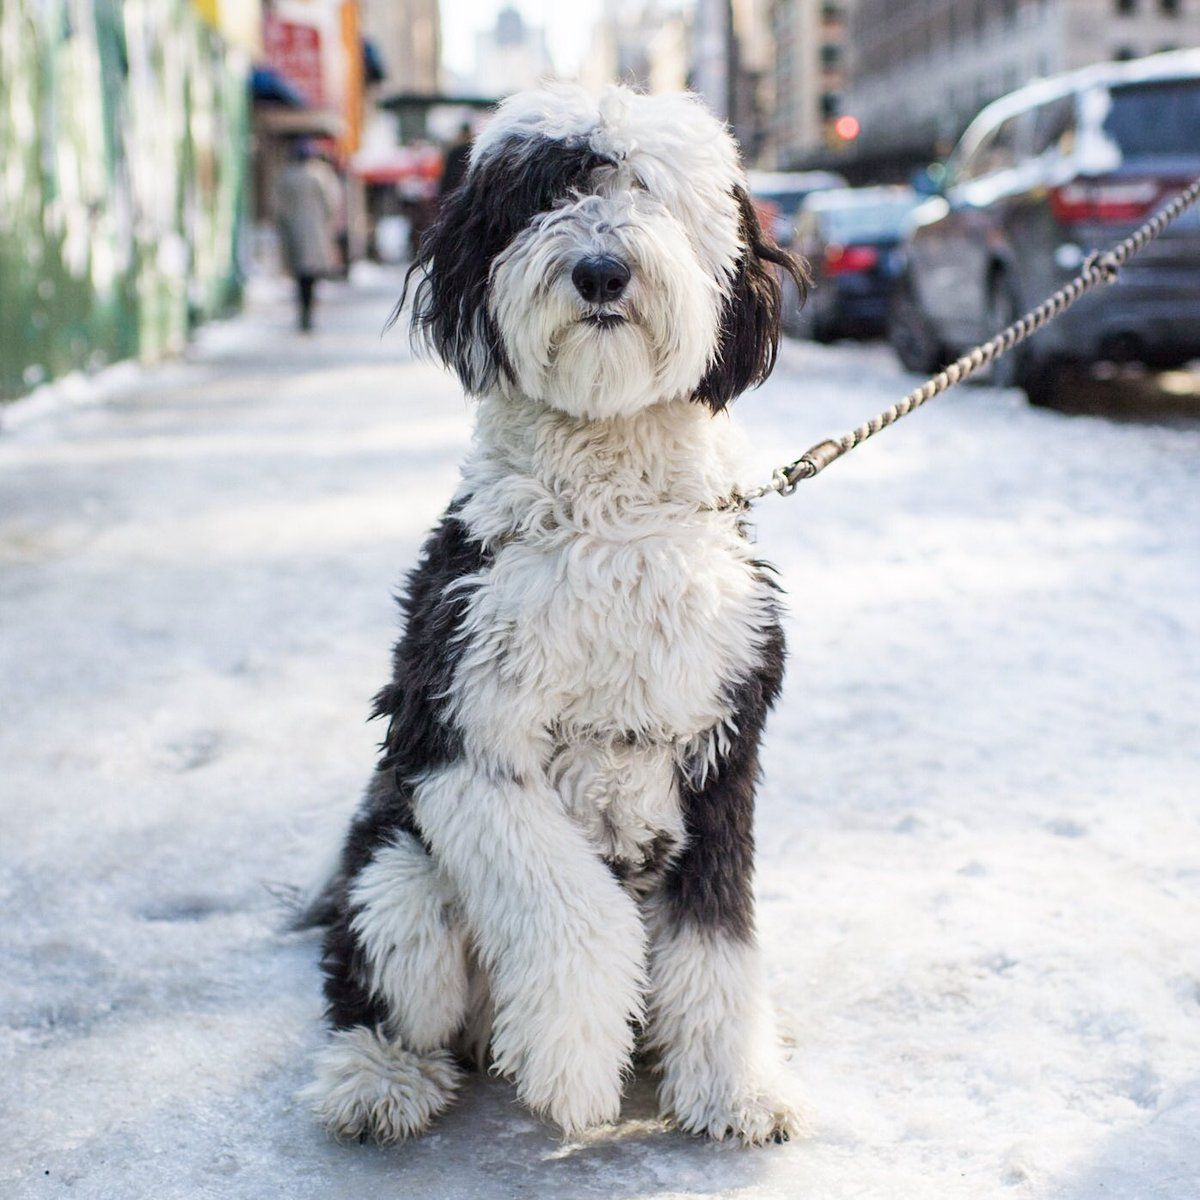 The Dogist Thedogist Twitter Sheepadoodle Cuddly Animals Dog Love